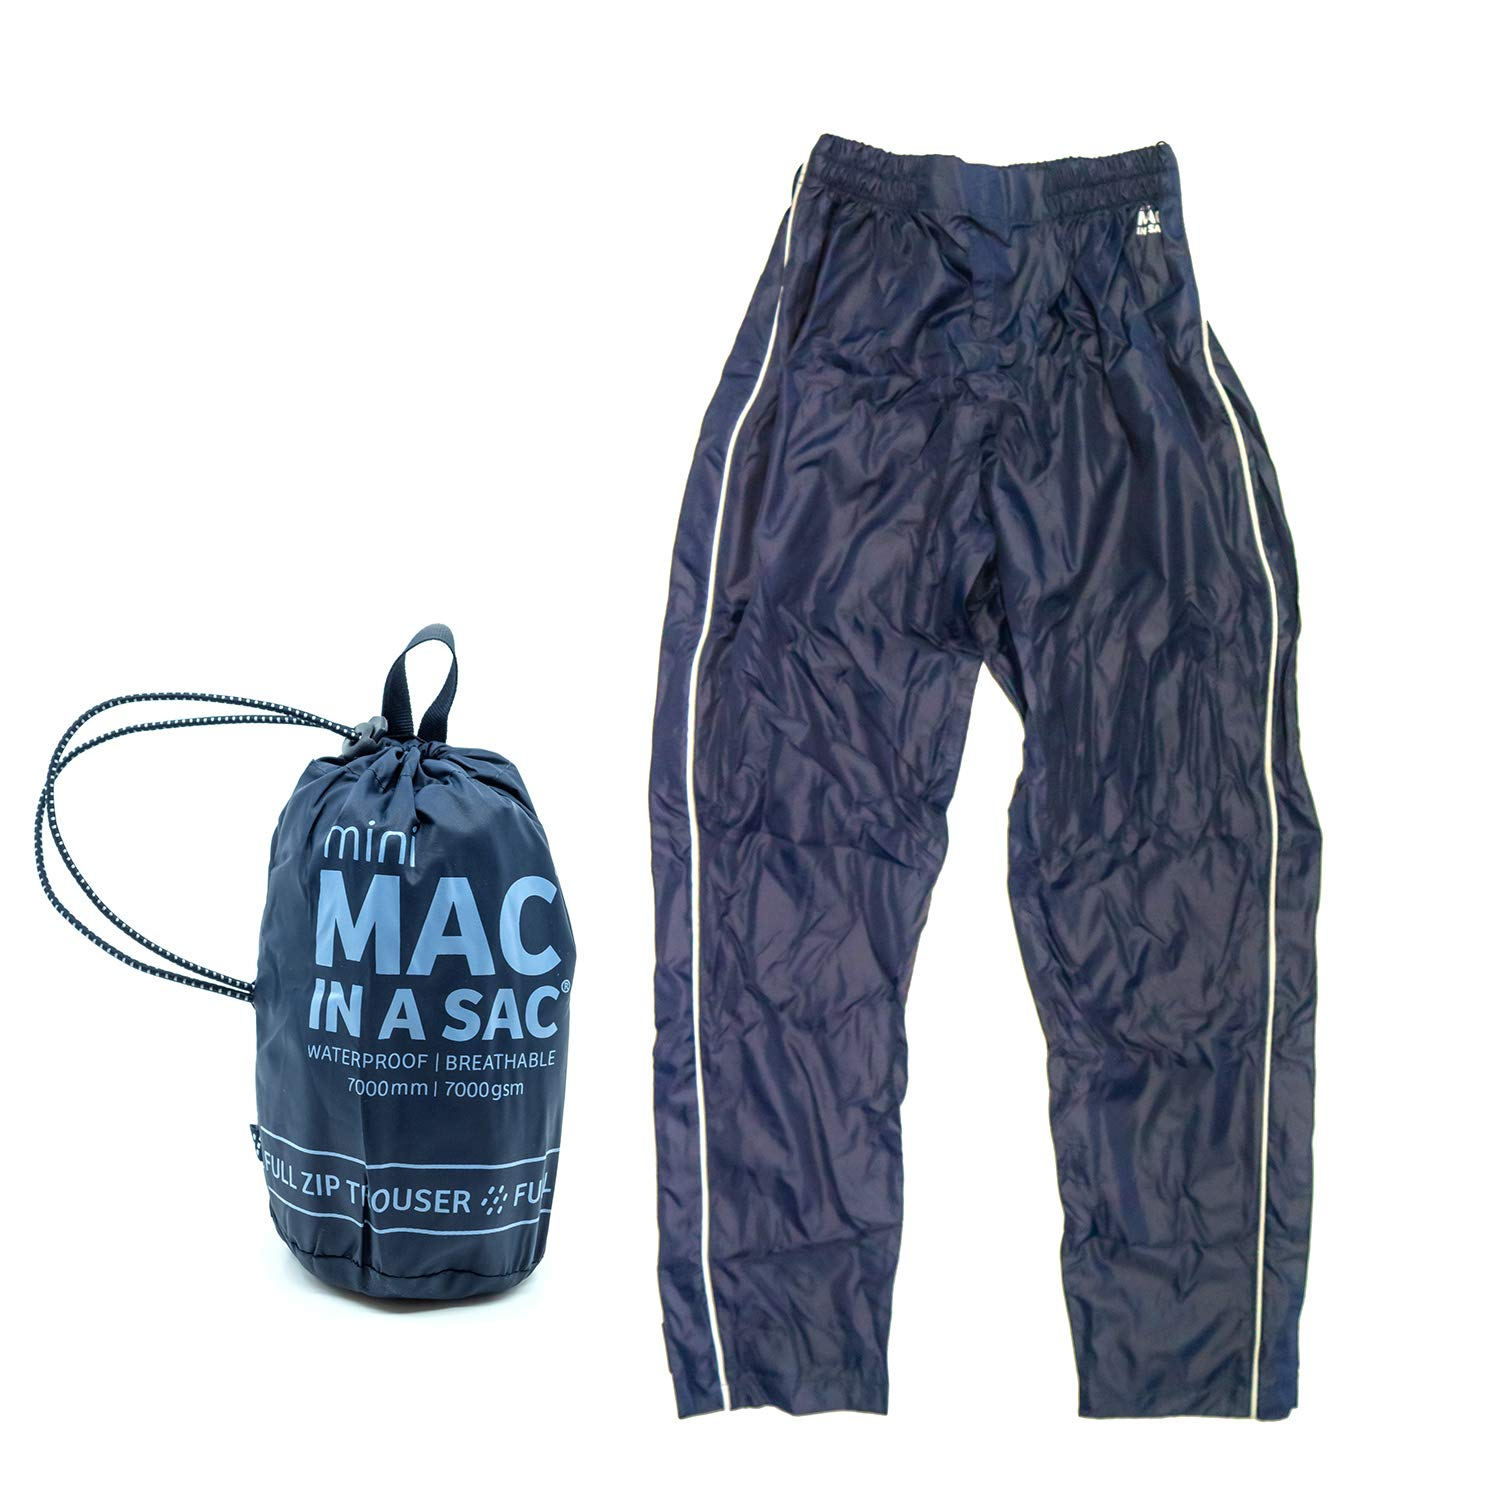 Mac in a Sac Over trousers *Navy* Waterproof *Breathable* Taped Seams* Unisex